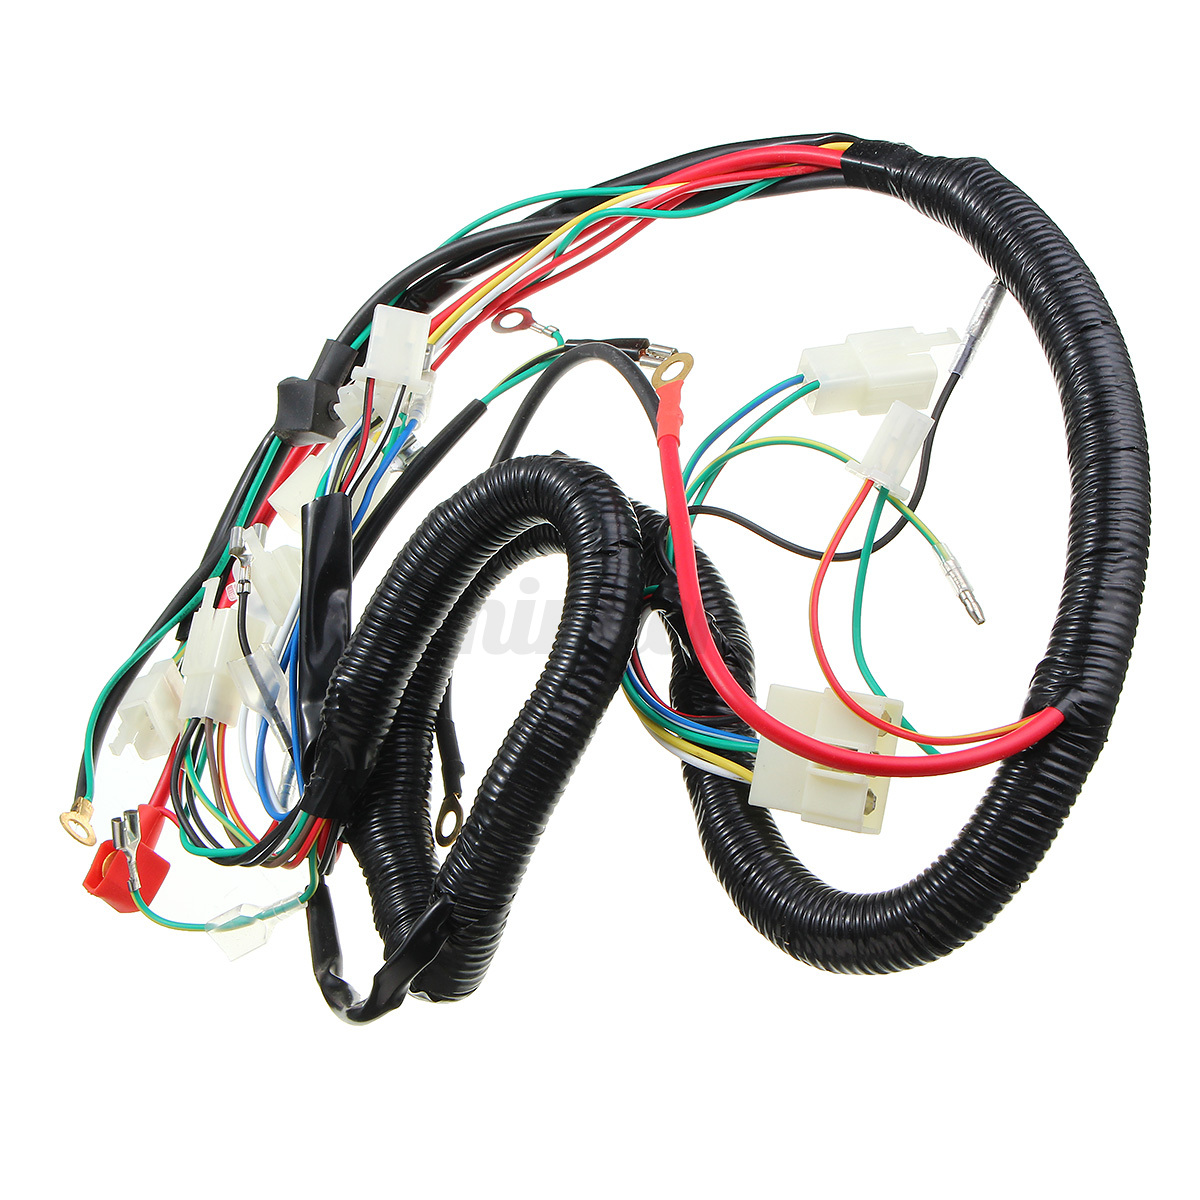 wiring harness quad electric cdi coil wire for zongshen zongshen 250cc wire  harness Zongshen 250Cc Manual Quad